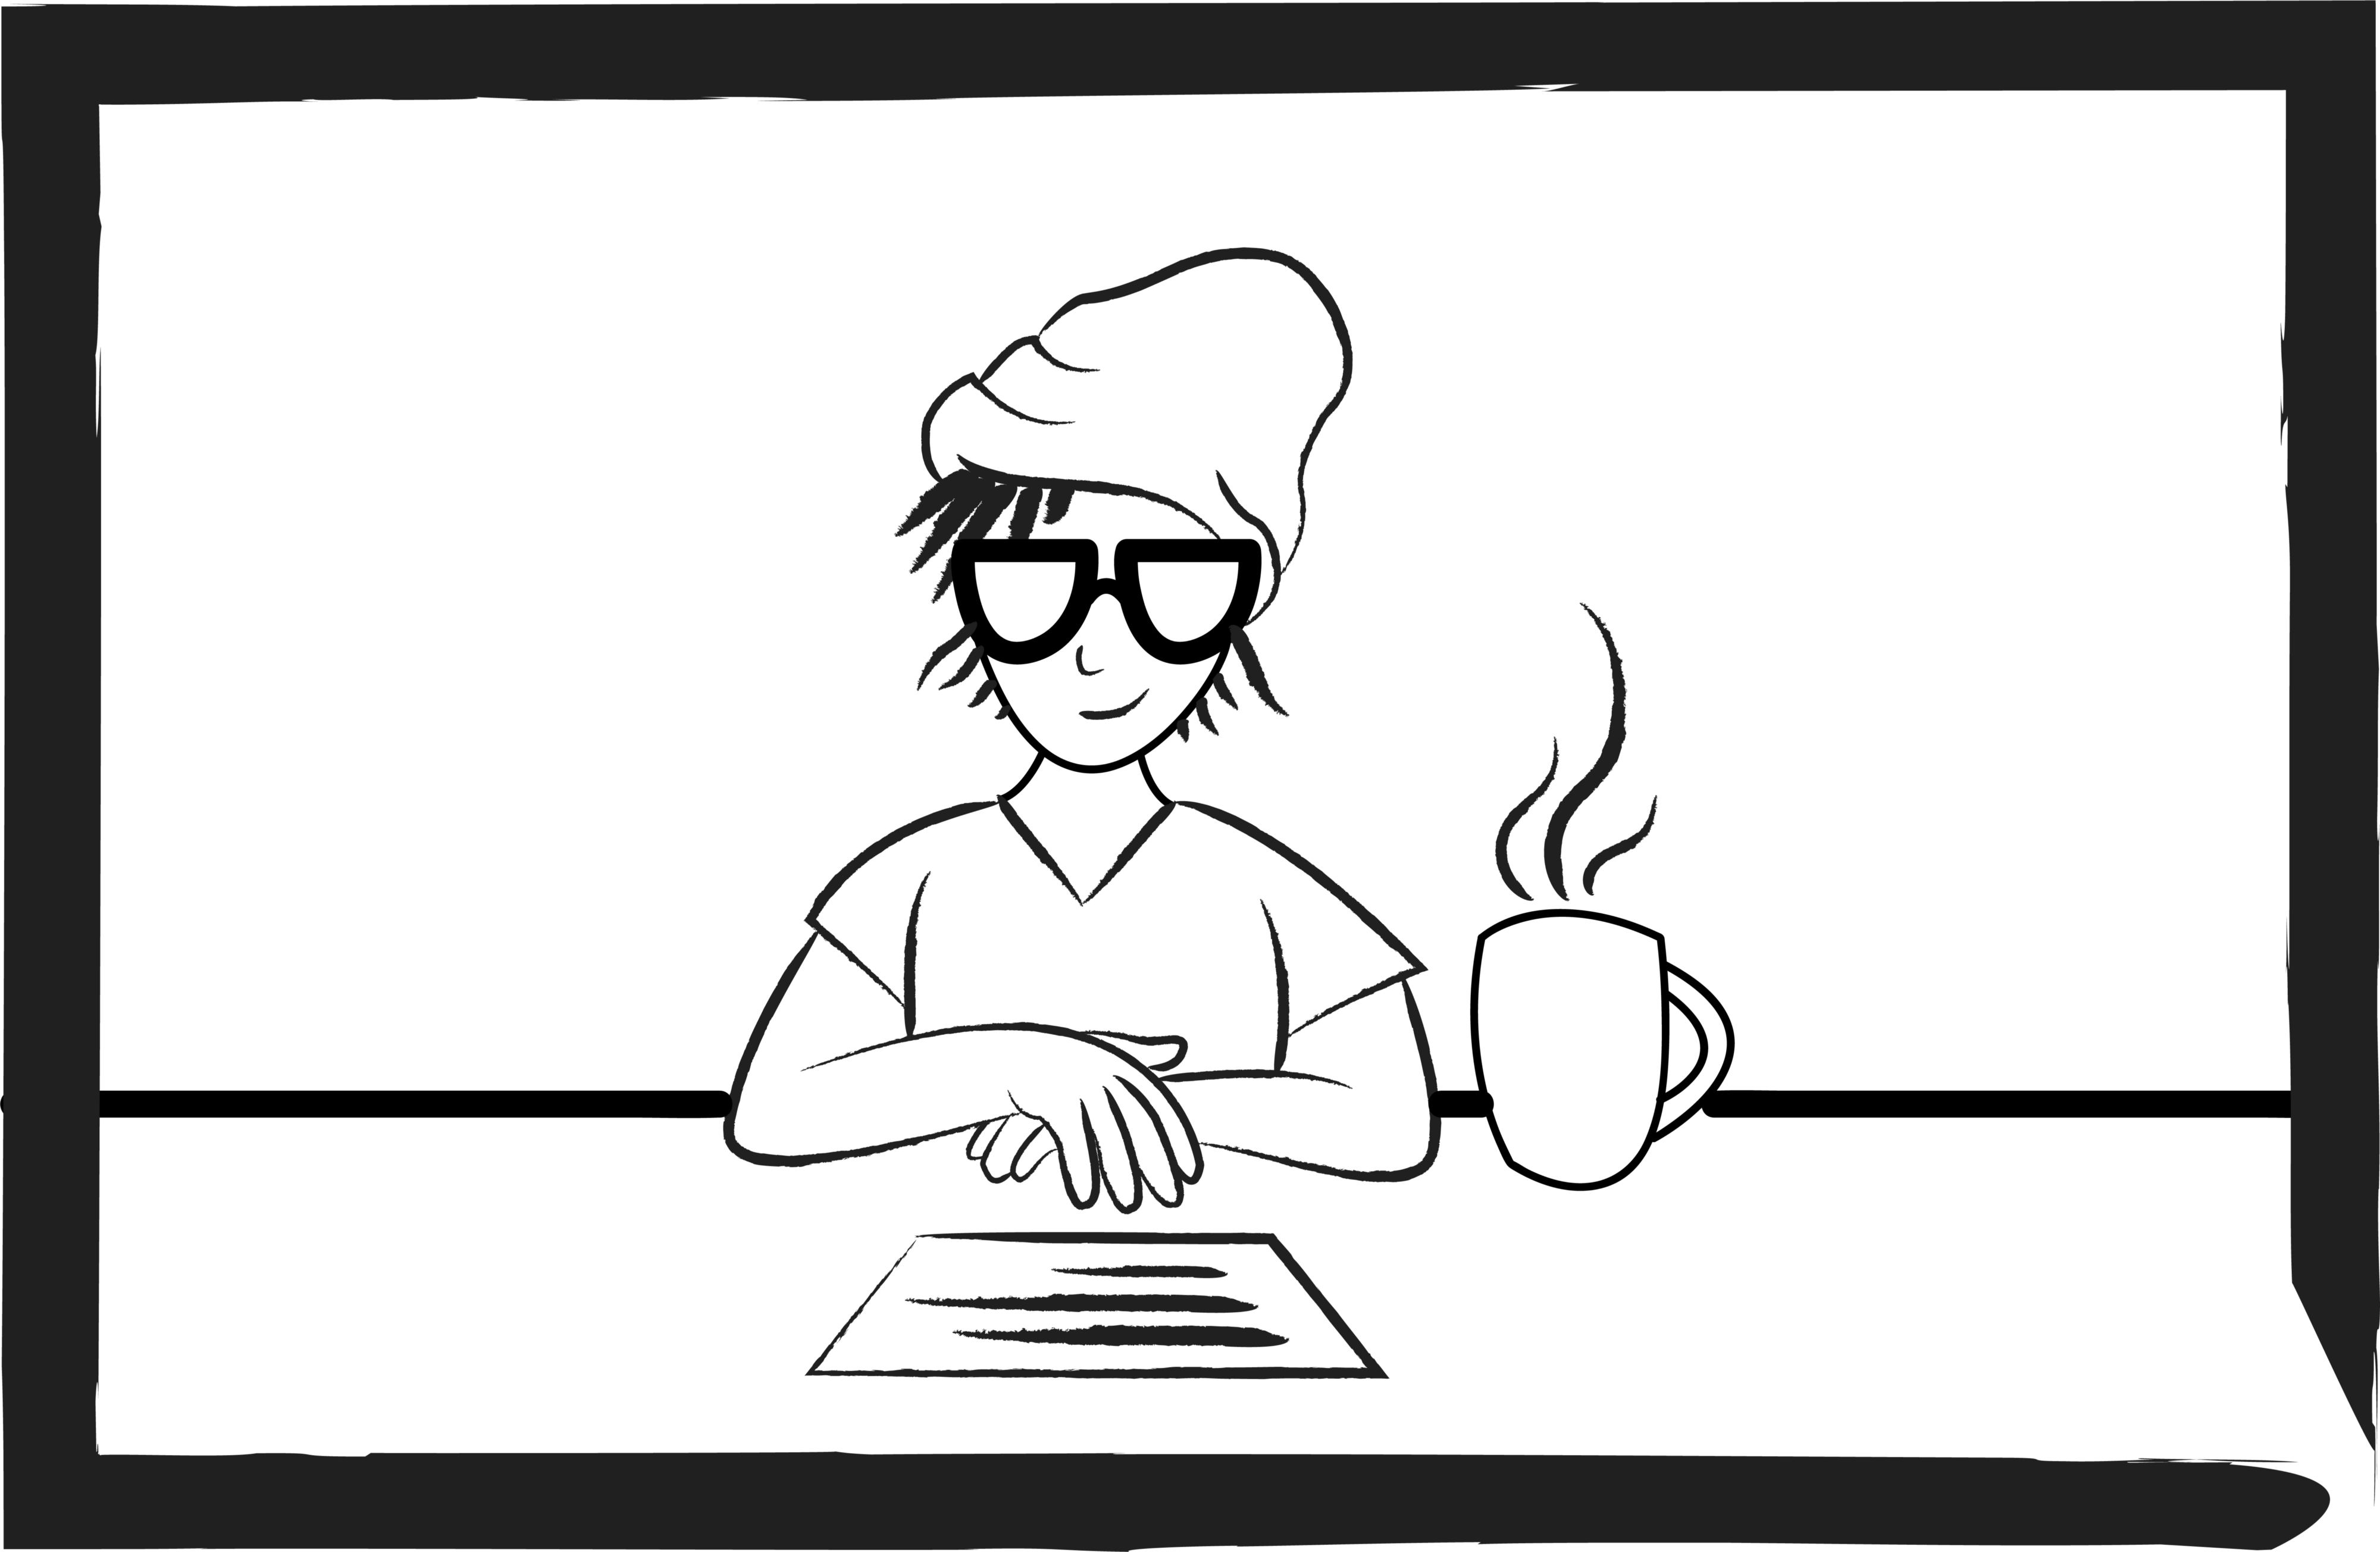 Black and white doodle of a person in glasses, toque, short hair, with writing in front on a desk and mug of coffee.